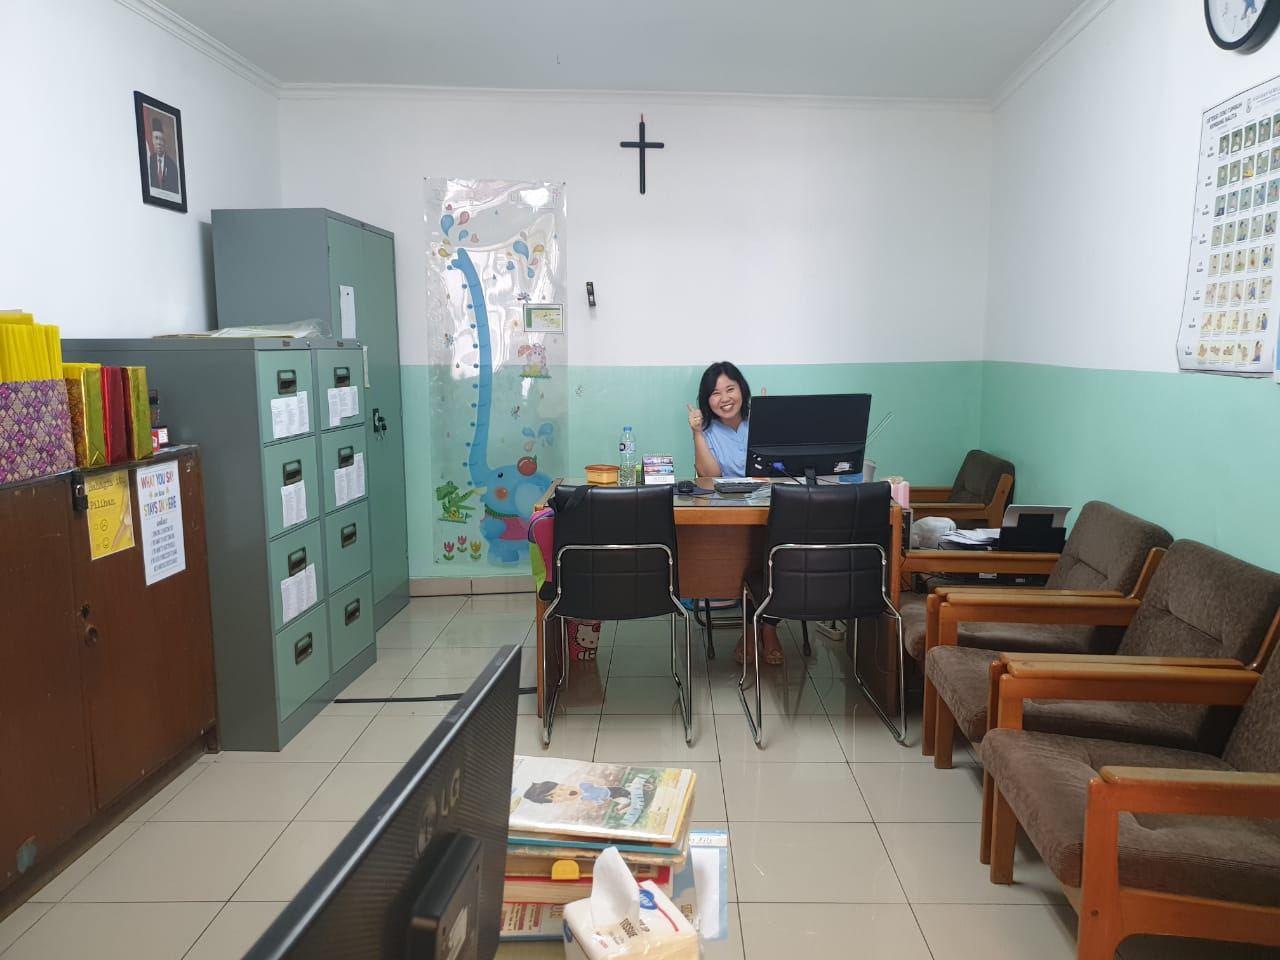 Guidance & Counseling Room